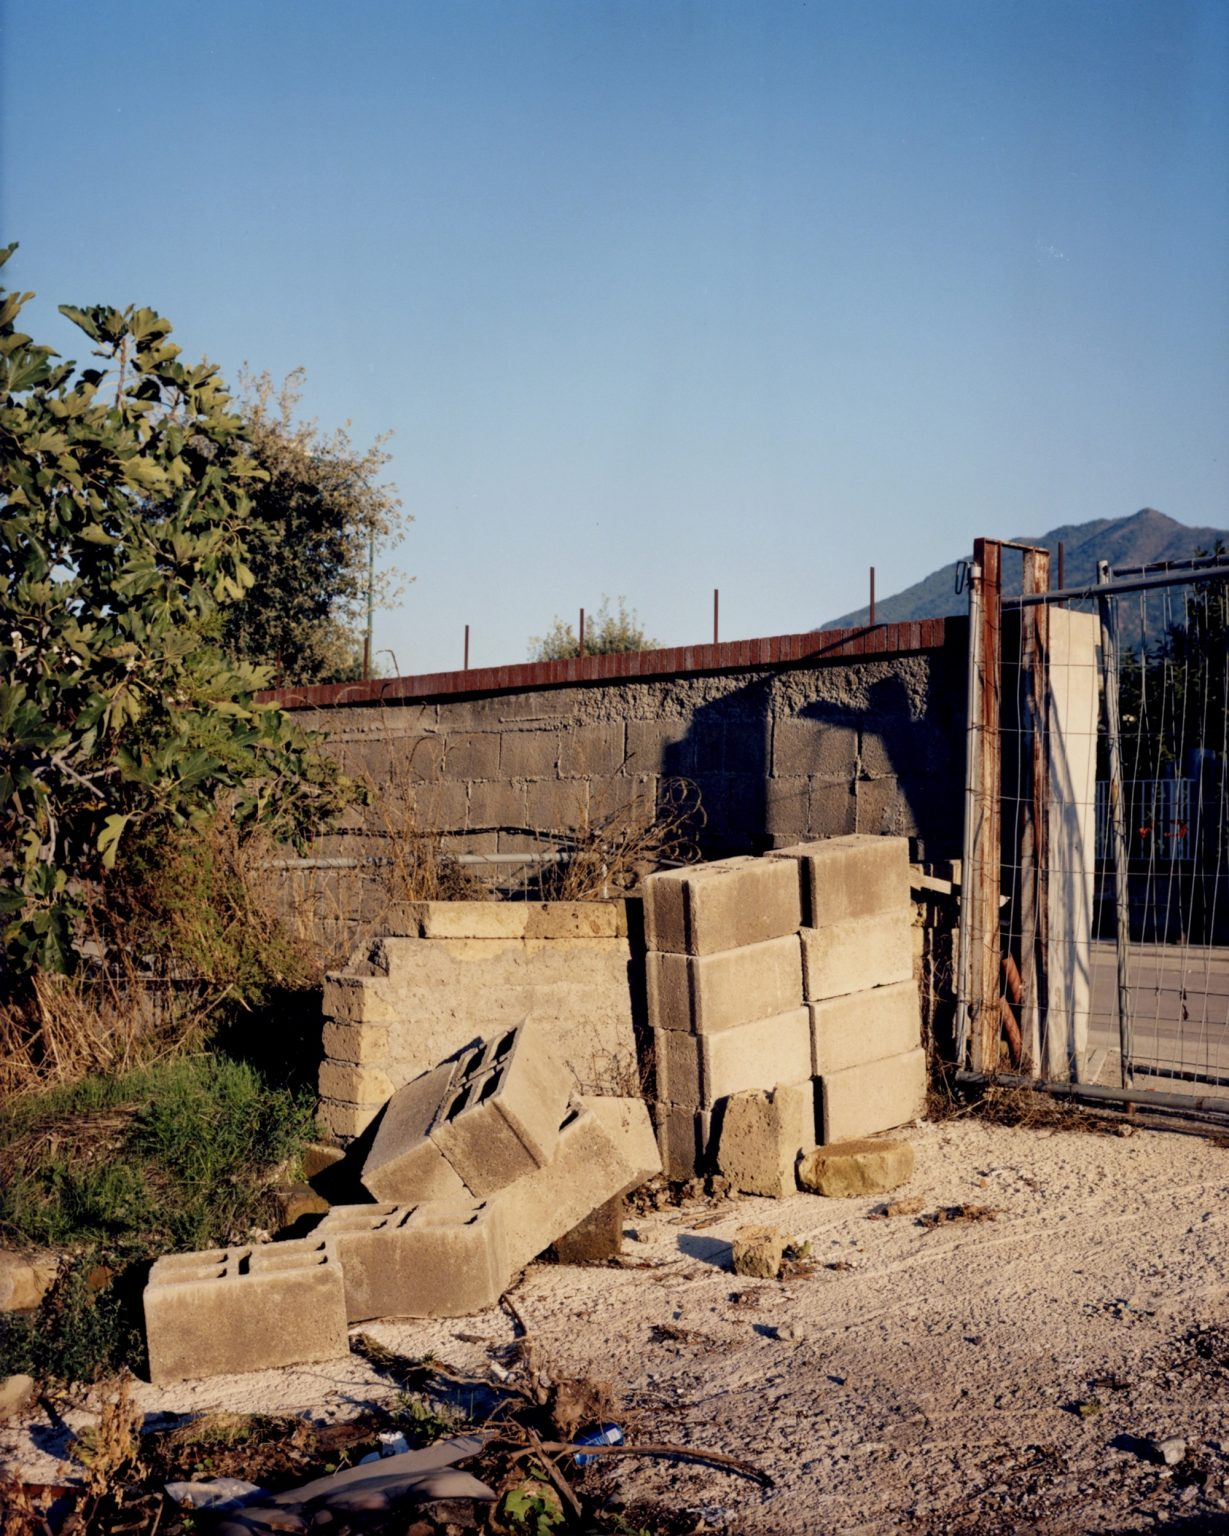 Cement bricks not used. rovince of Naples, 2020